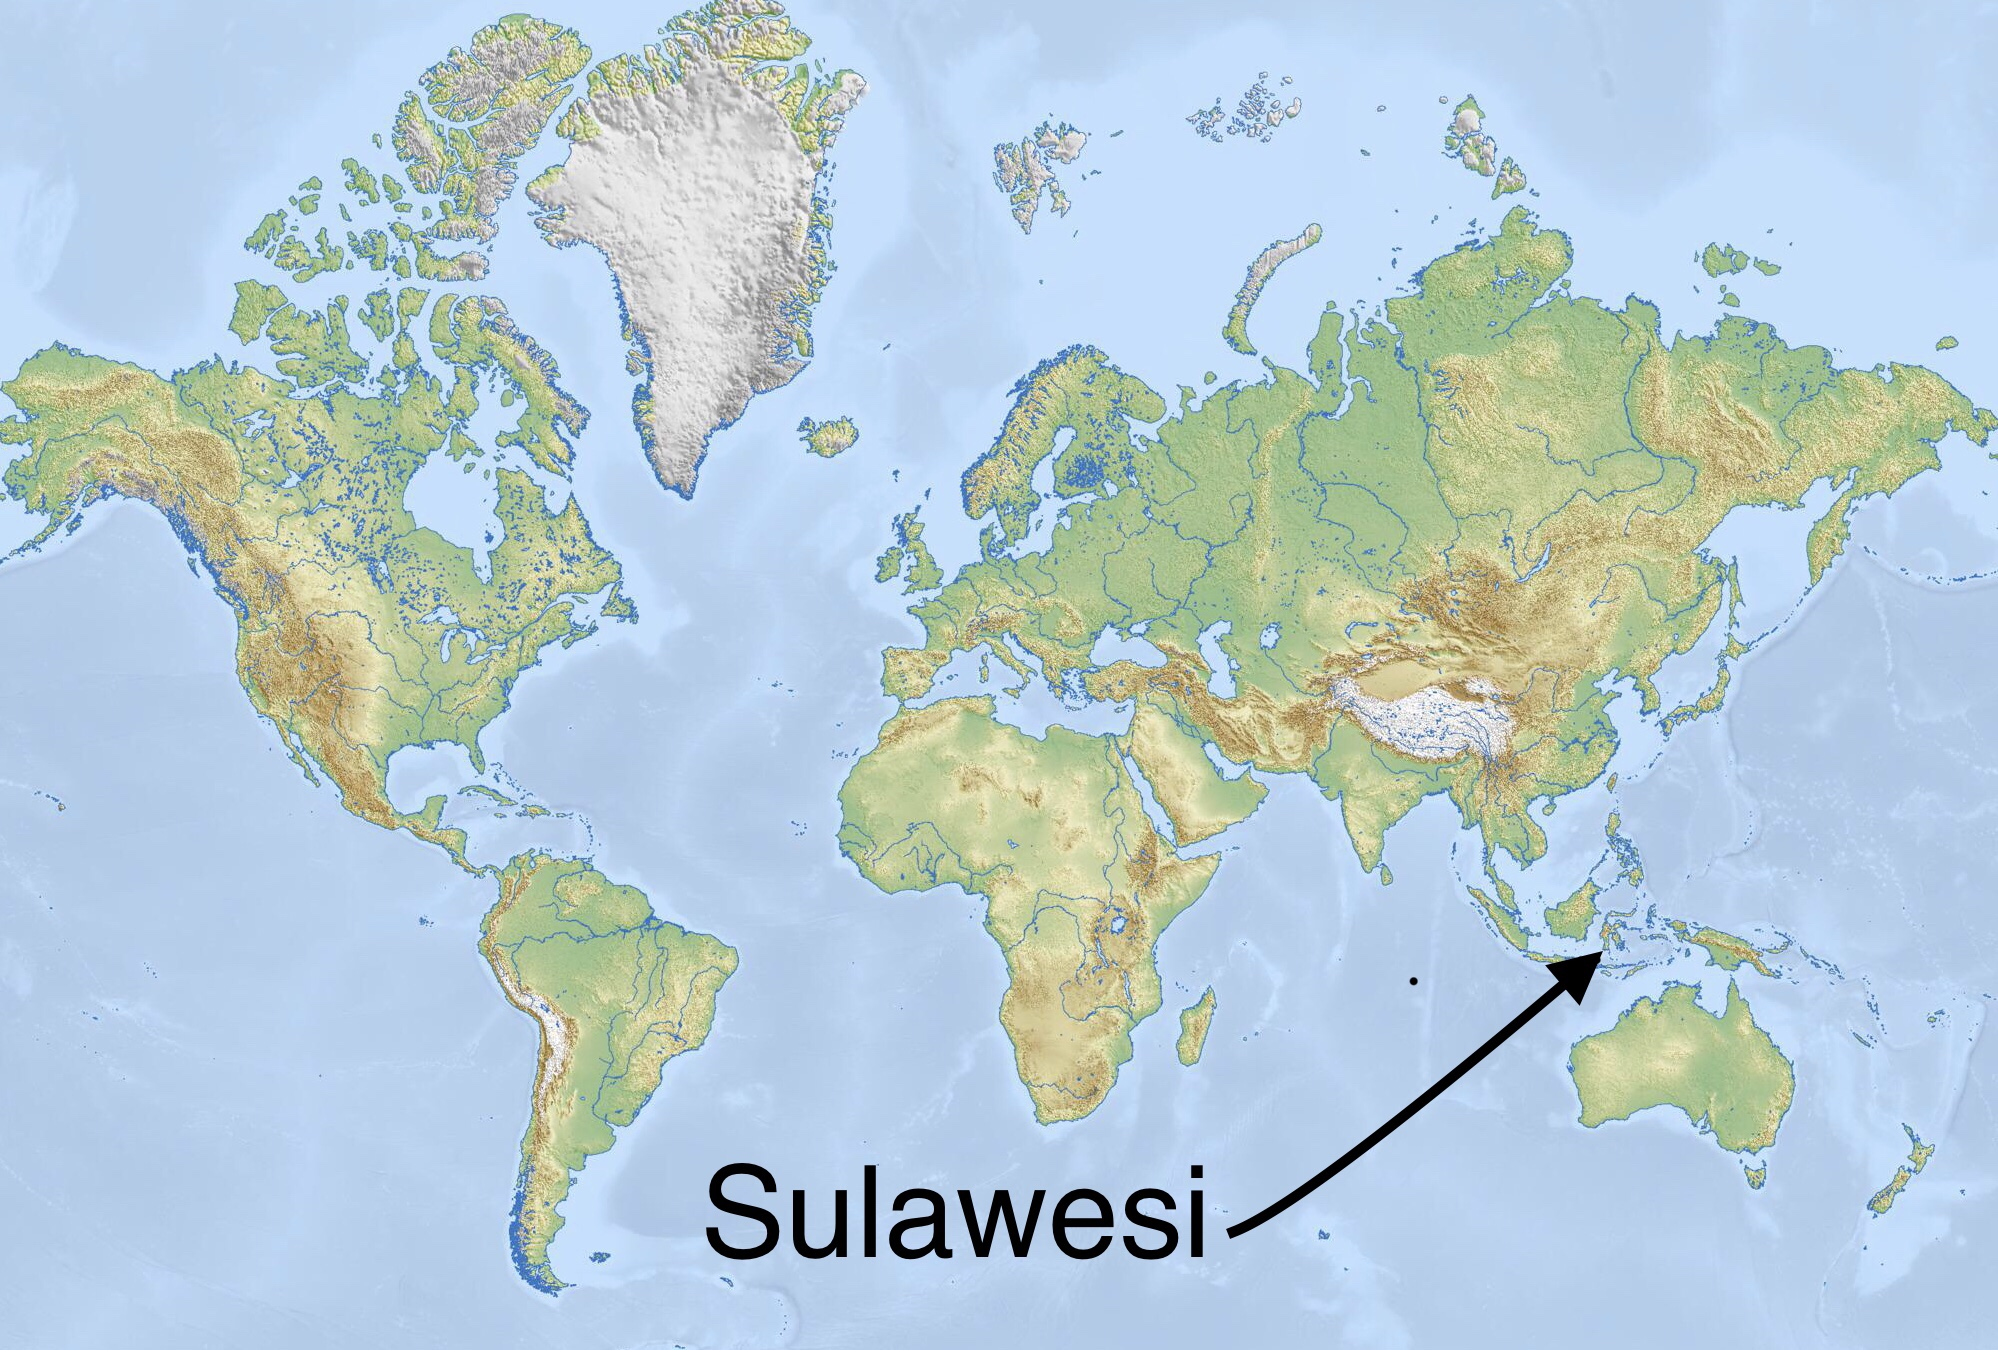 Map showing Sulawesi part of Indonesia. Shapes a little like a starfish.